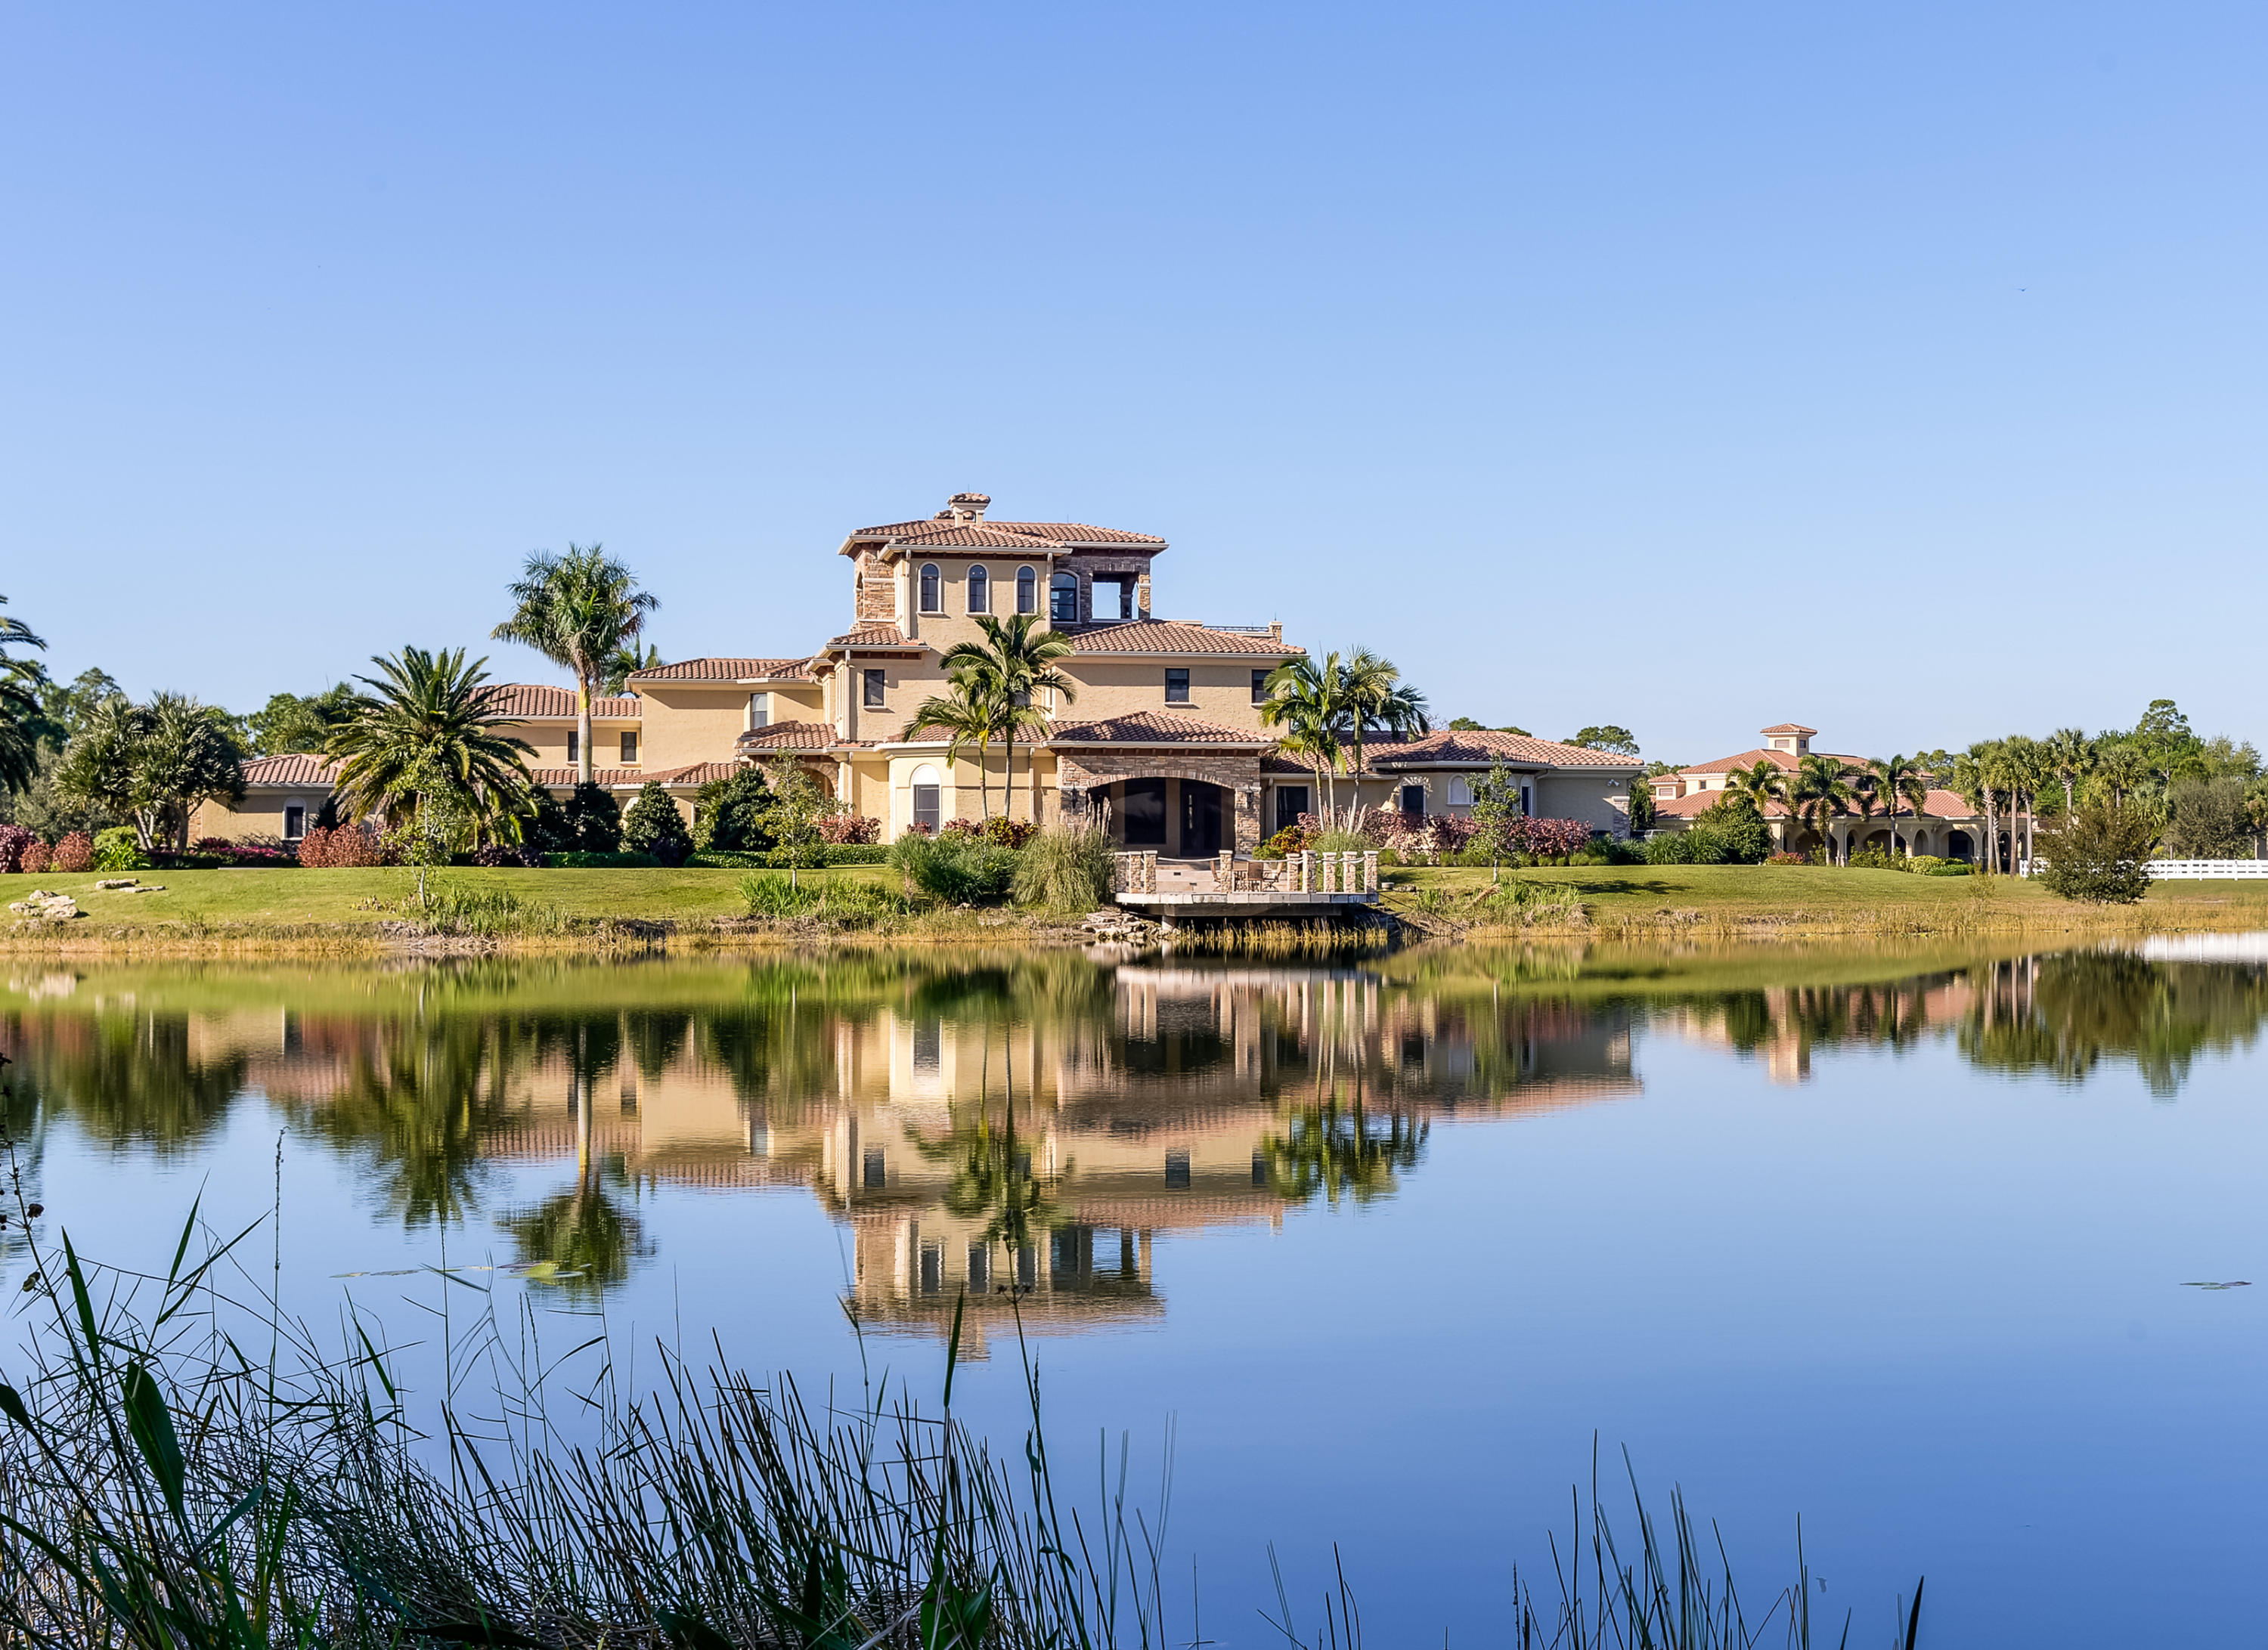 New Home for sale at 19700 Mack Dairy Road in Jupiter